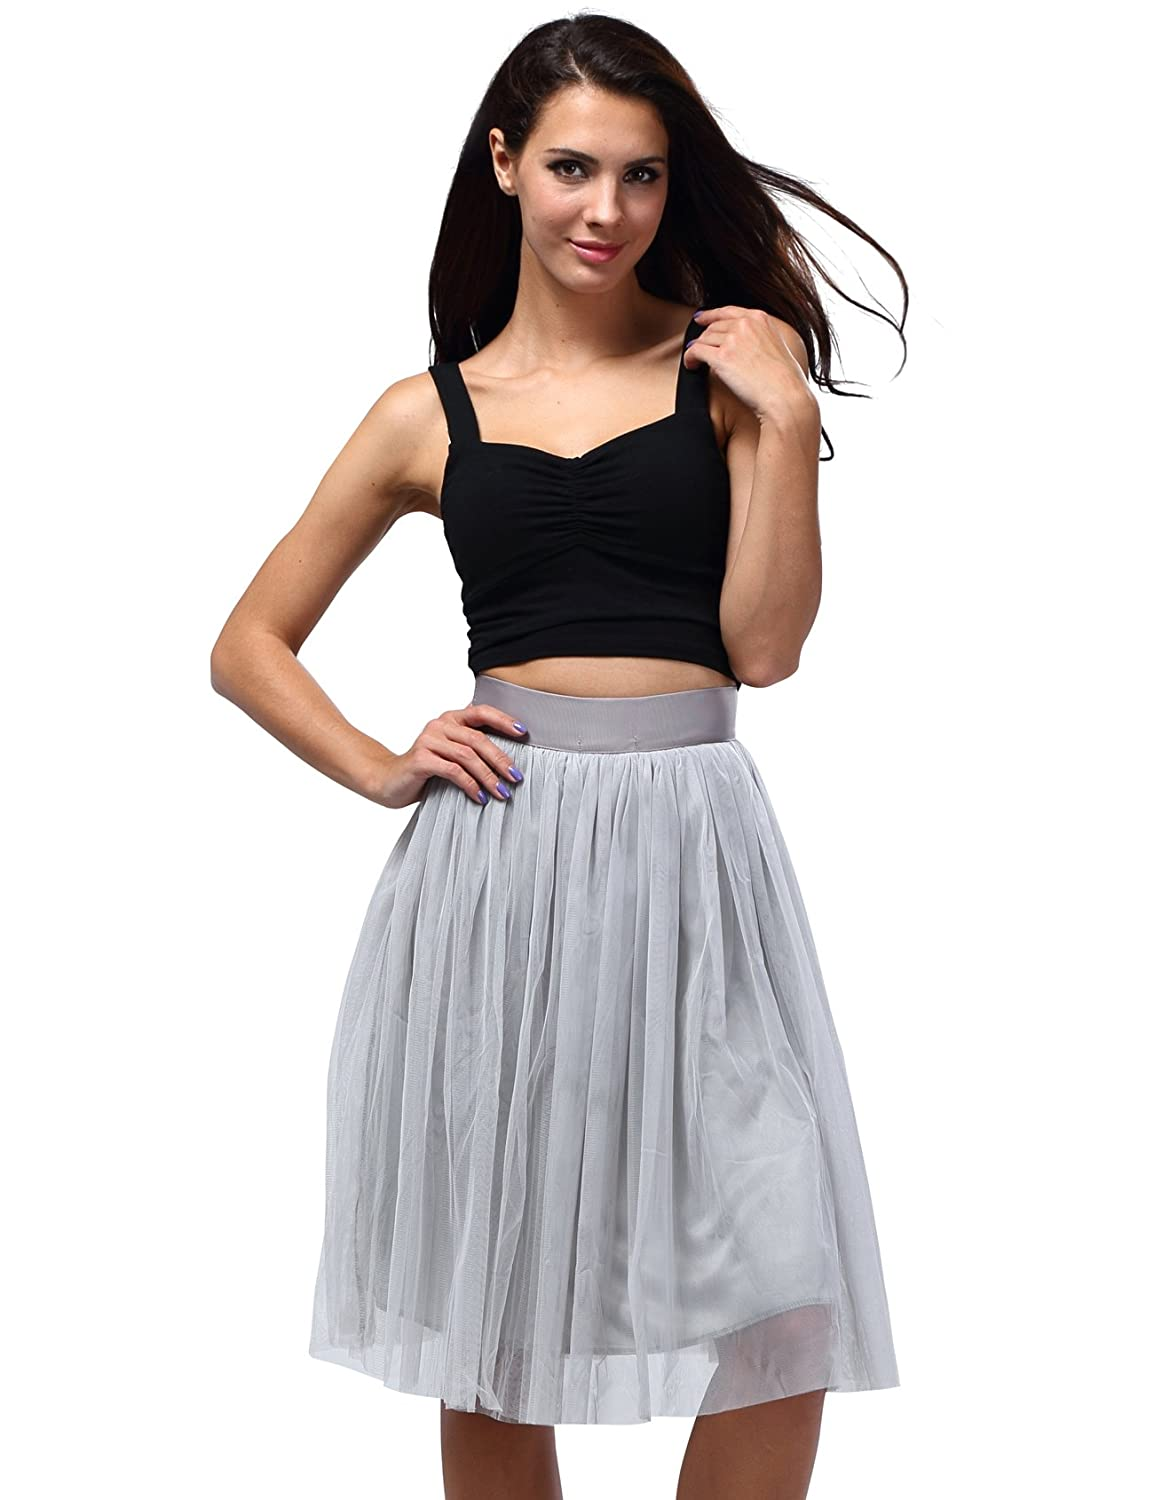 Bepei Women Mech Layer Bow Detailing Elegant Skirt Gray